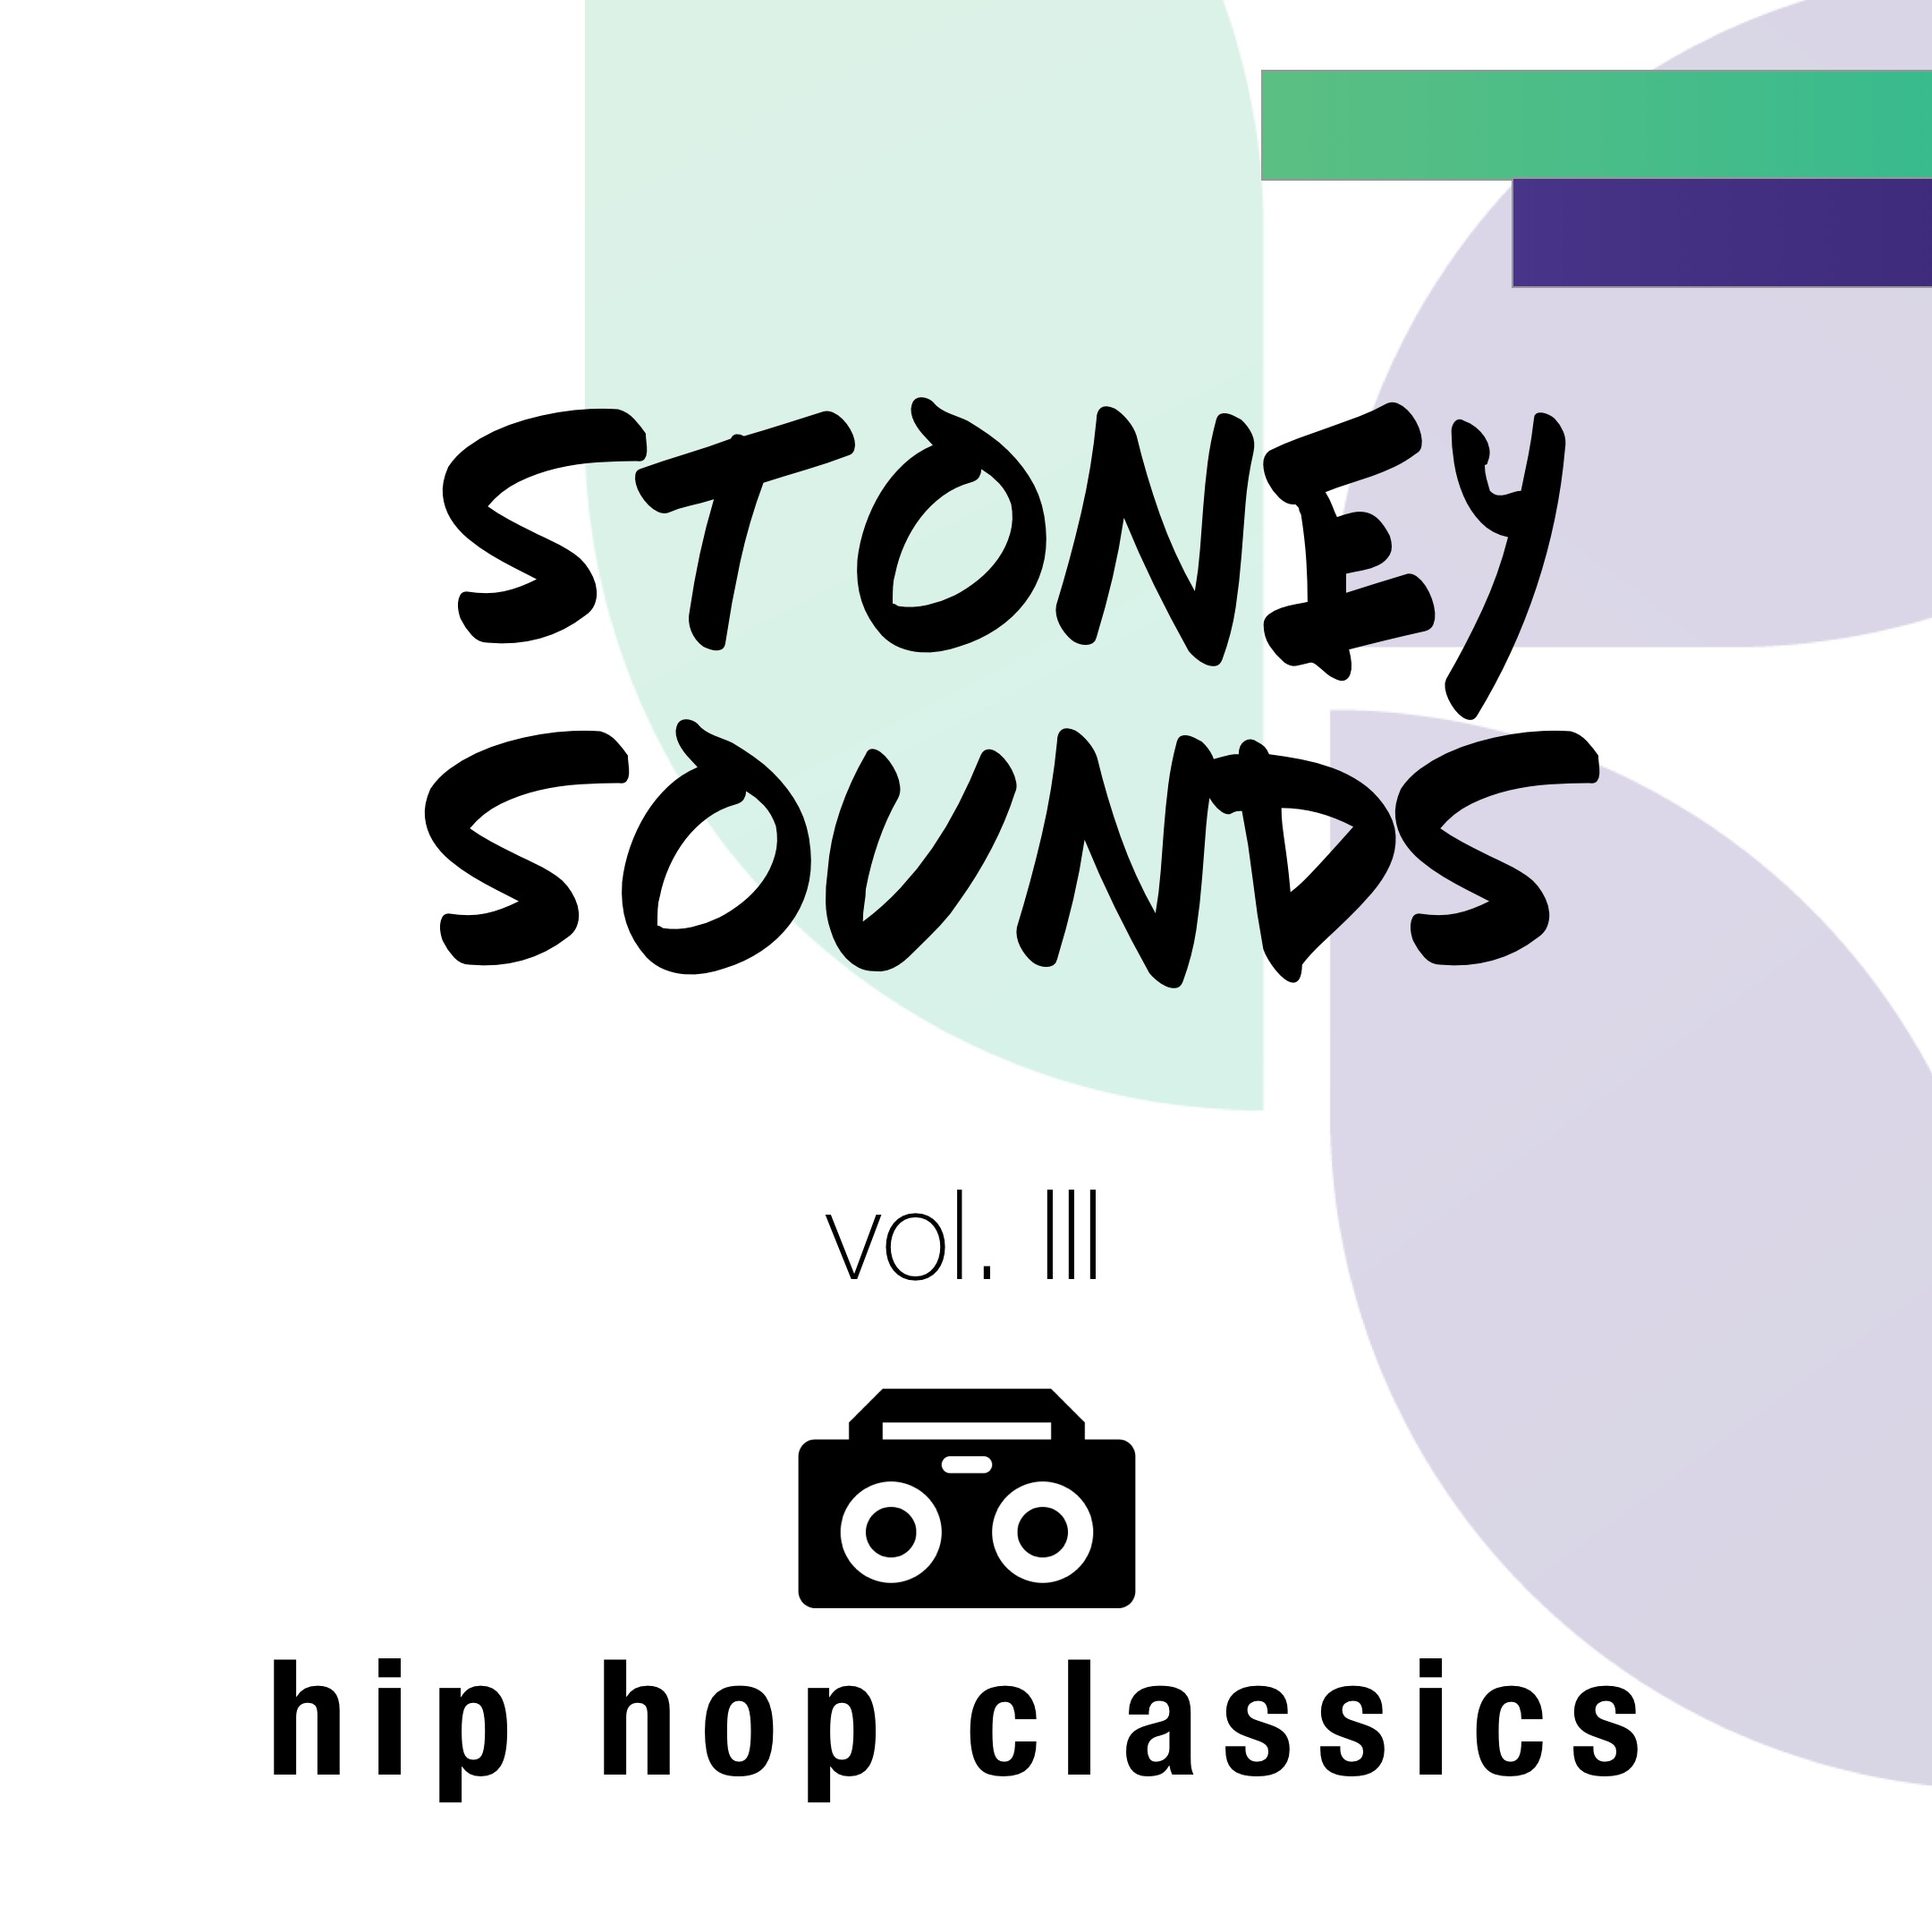 Stoney Sounds (vol. III) - Hip Hop Classics